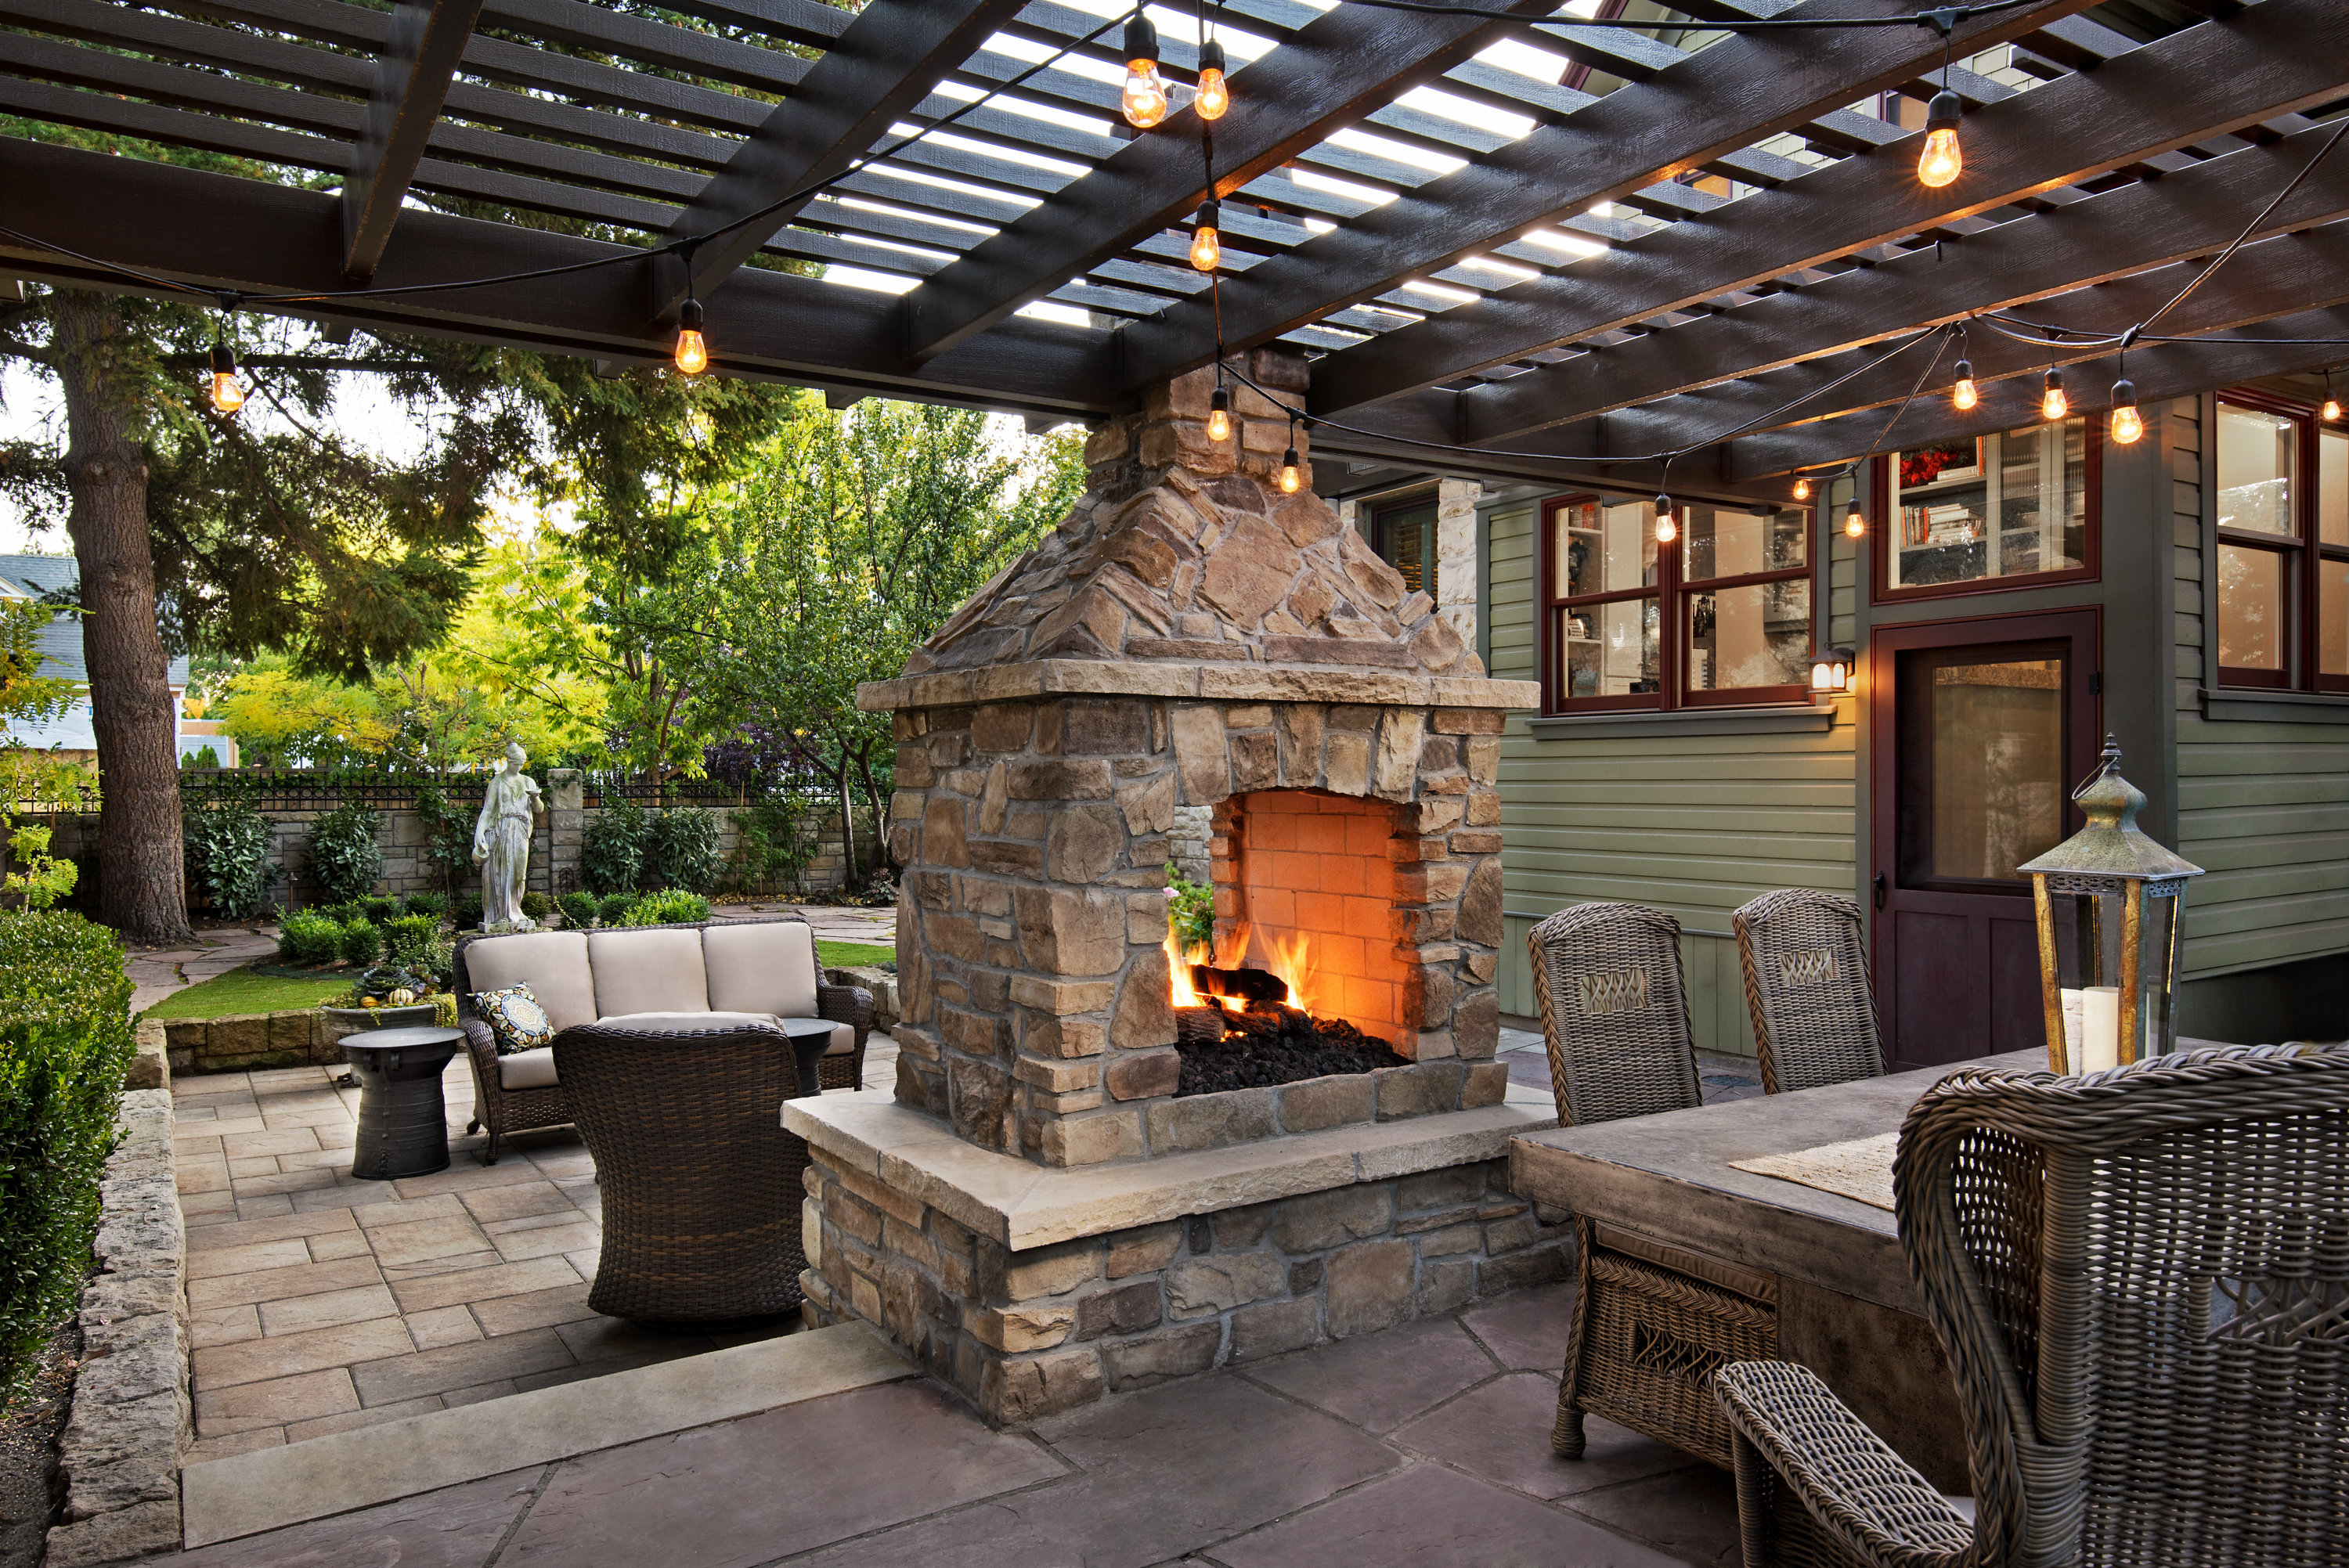 Outdoor Fireplace and Pergola | The Garden Artist Boise, ID